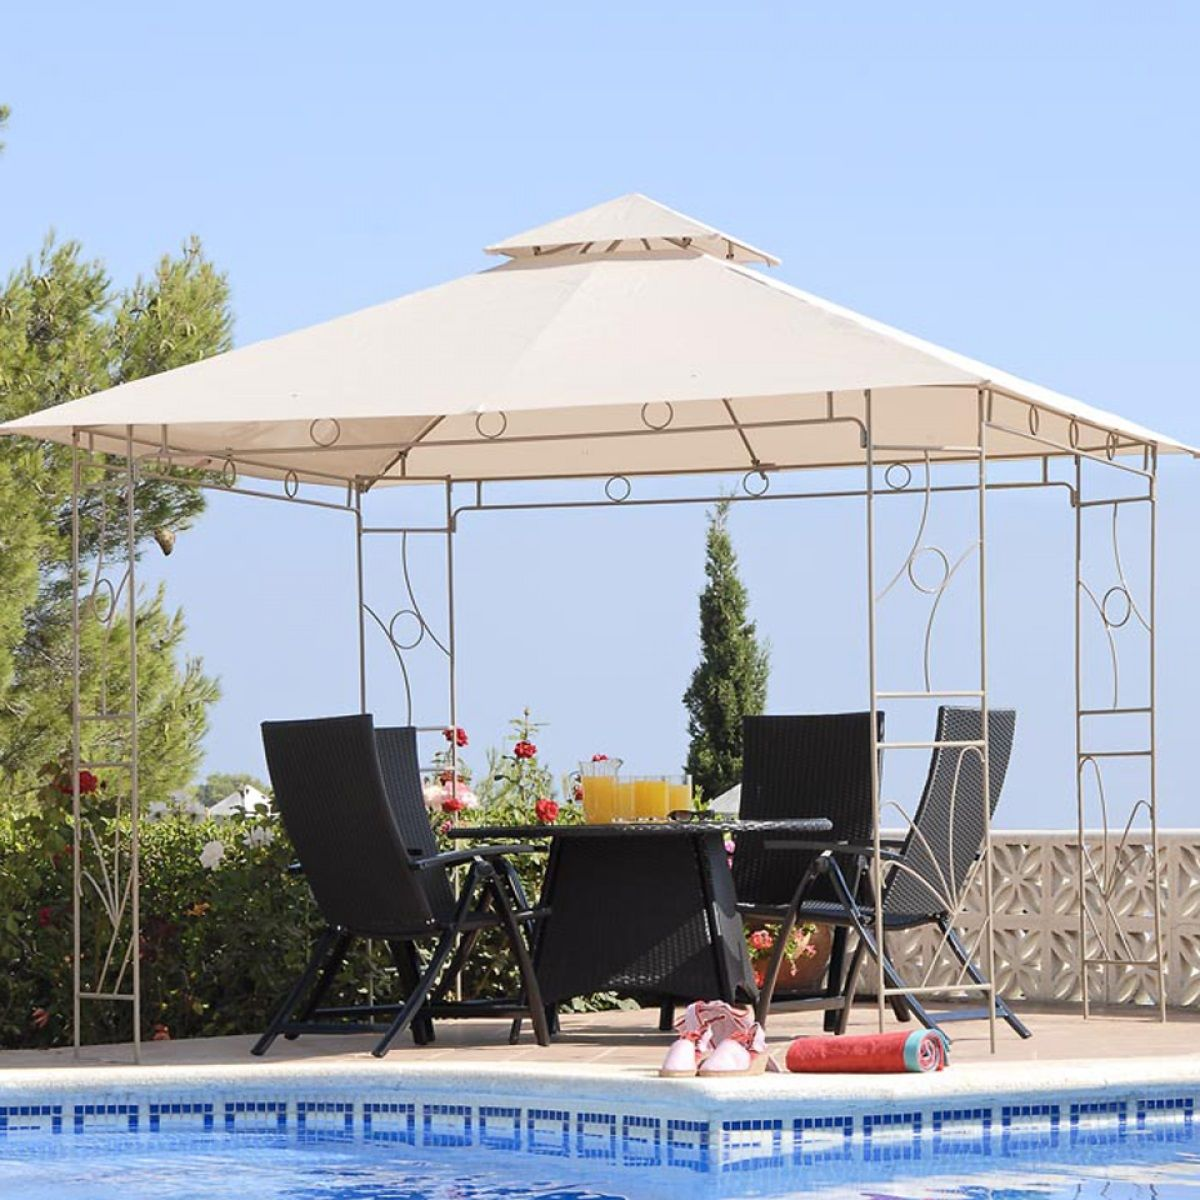 Small Light Gazebo Canopy Decors Set On Beside Swimming Pool With Black Chairs And Round Table & Small Light Gazebo Canopy Decors Set On Beside Swimming Pool With ...